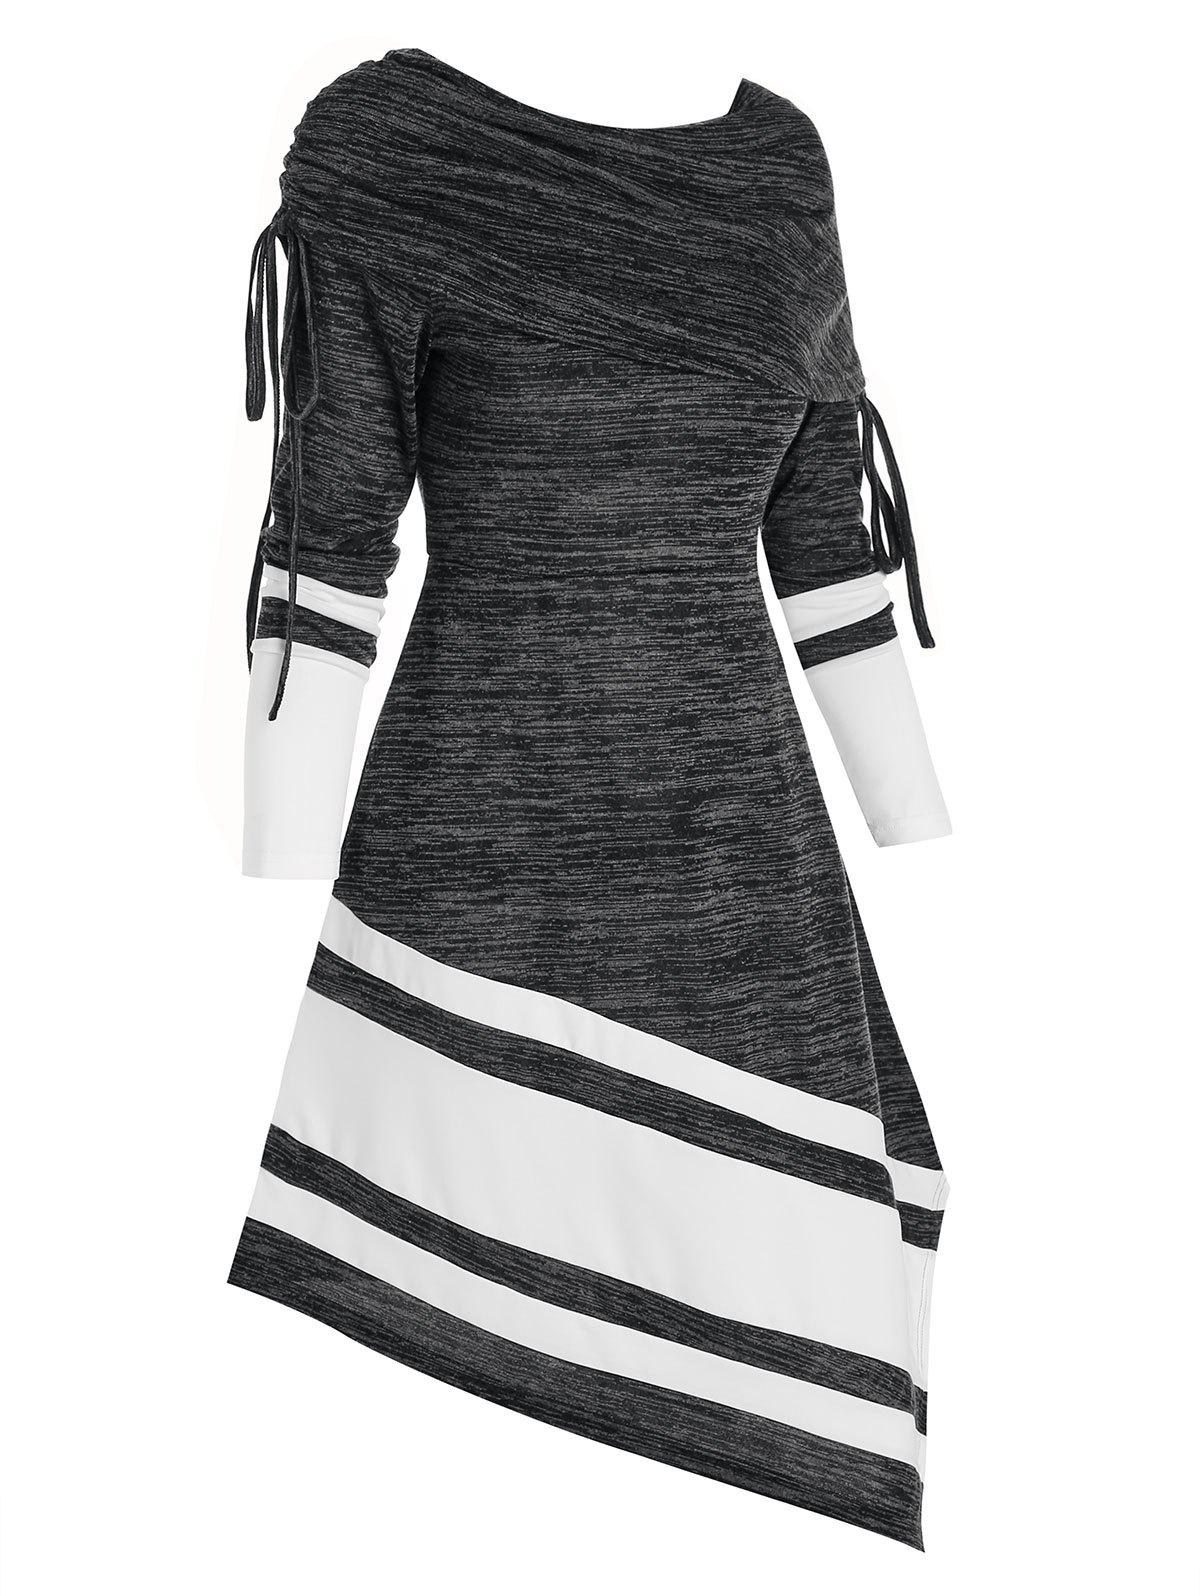 Striped Cinched Foldover Asymmetrical Long Sleeve Dress - BLACK S